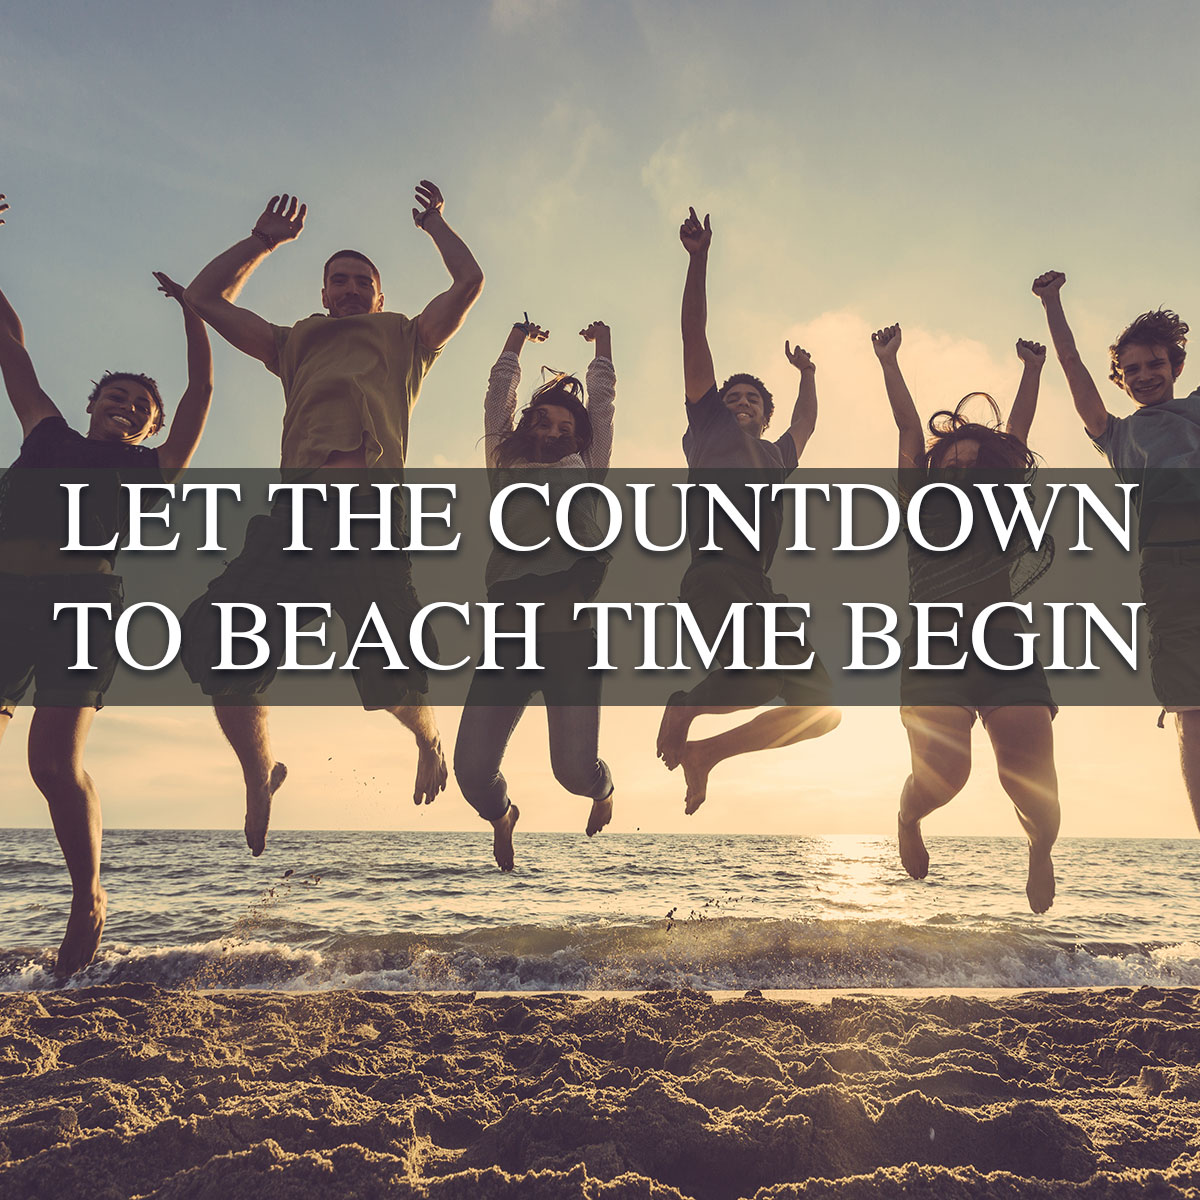 Deep Vacation Quotes: 7 Epic Beach Quotes To Celebrate The New Year